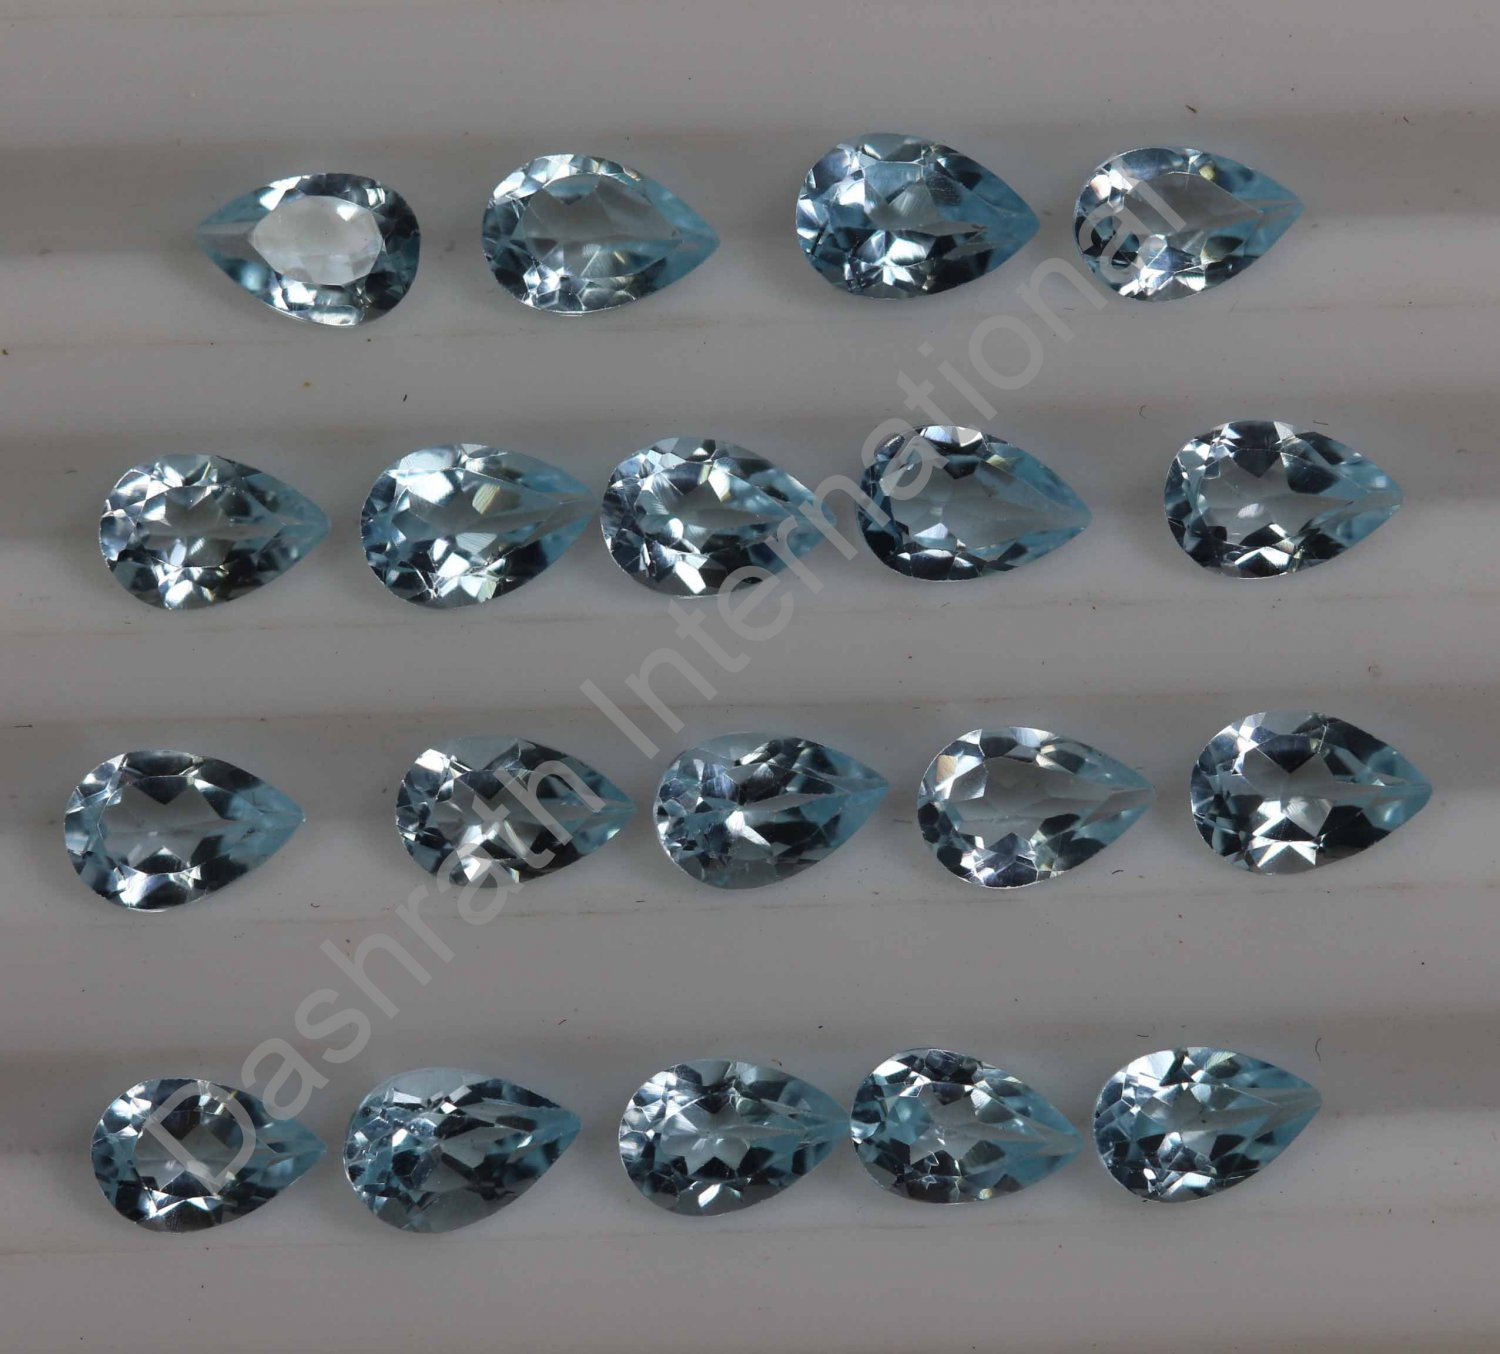 5x3mm Natural Sky Blue Topaz Faceted Cut Pear 50 Pieces Lot Top Quality Loose Gemstone